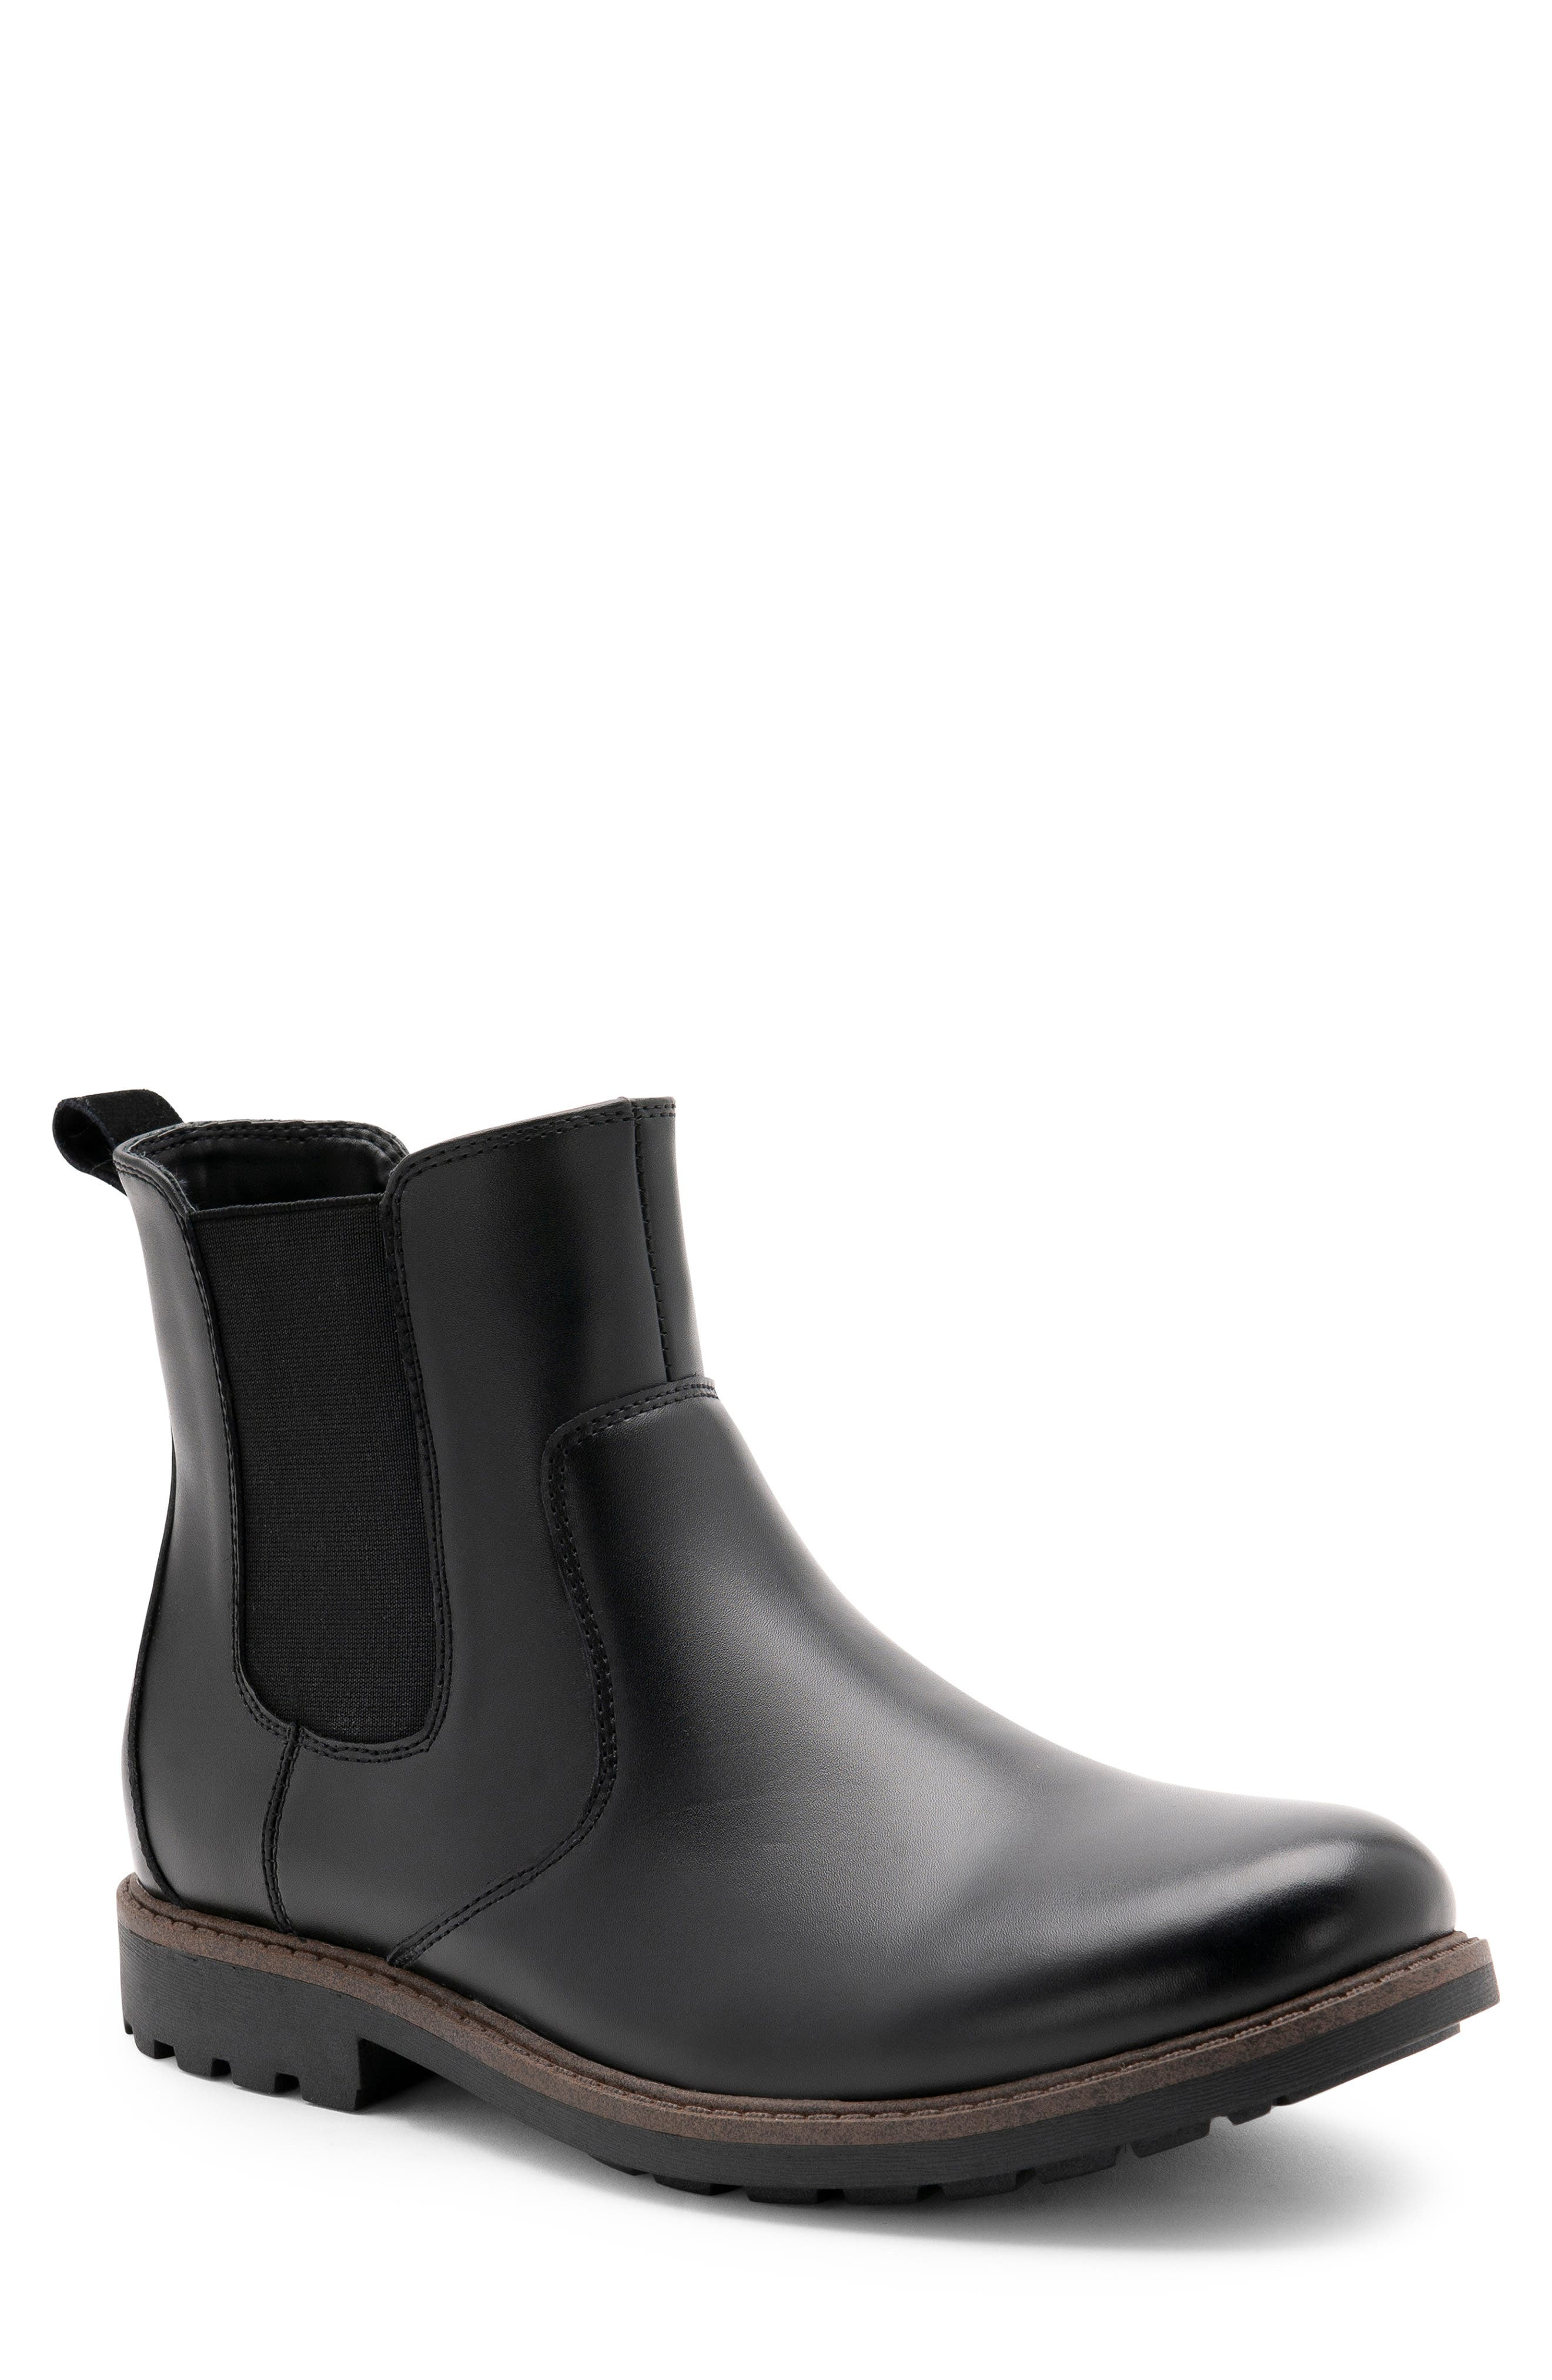 BLONDO, Shadow Waterproof Chelsea Boot, Main thumbnail 1, color, BLACK LEATHER